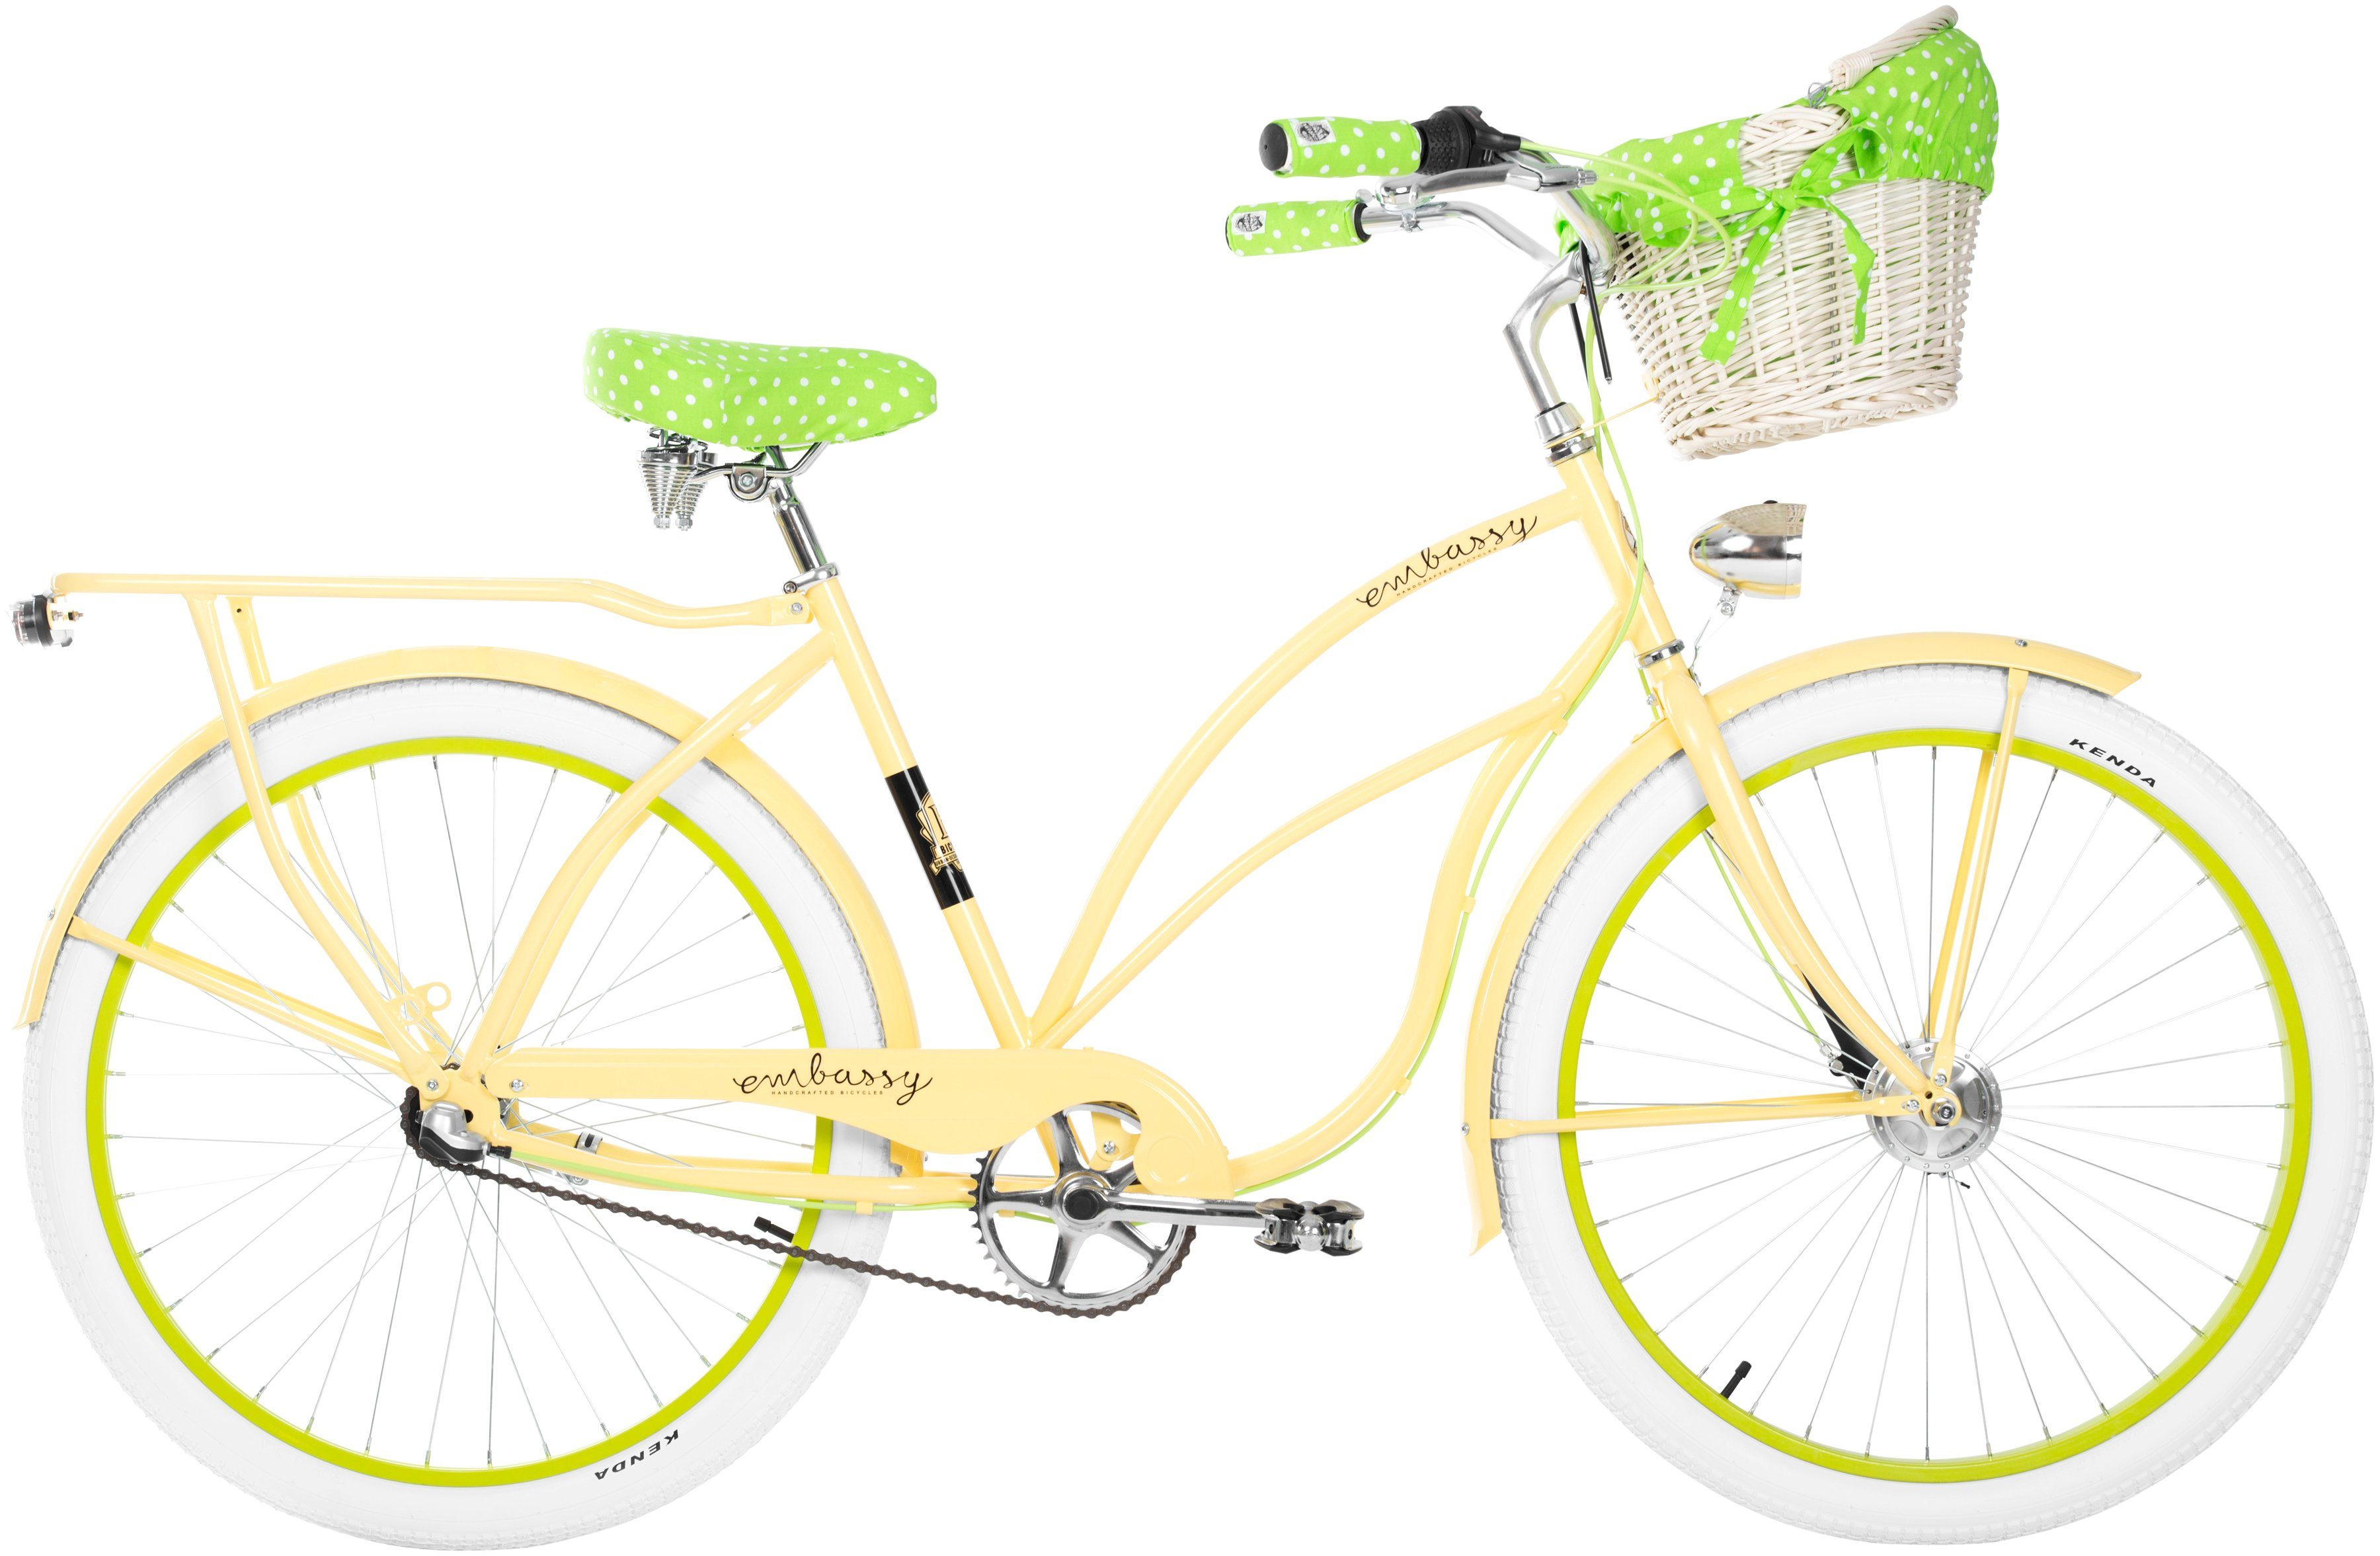 Cruiser-Bike »Lemon Grove «, 26 Zoll, 3 Gang, Rücktrittbremse